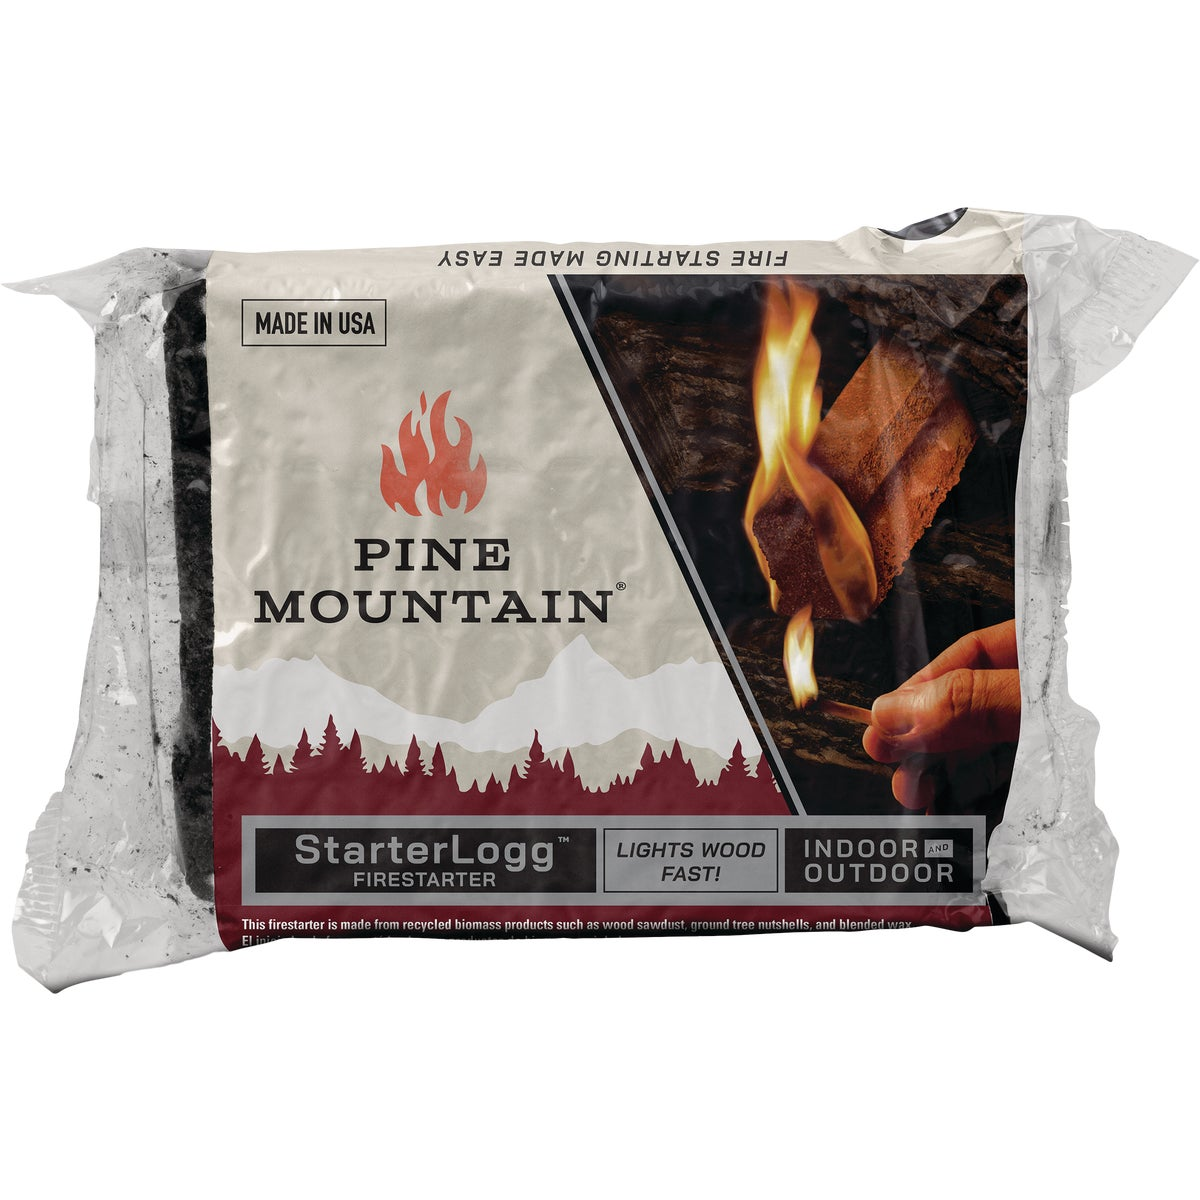 24PK FIRE STARTER - 4152501001 by Pine Mountain Corp